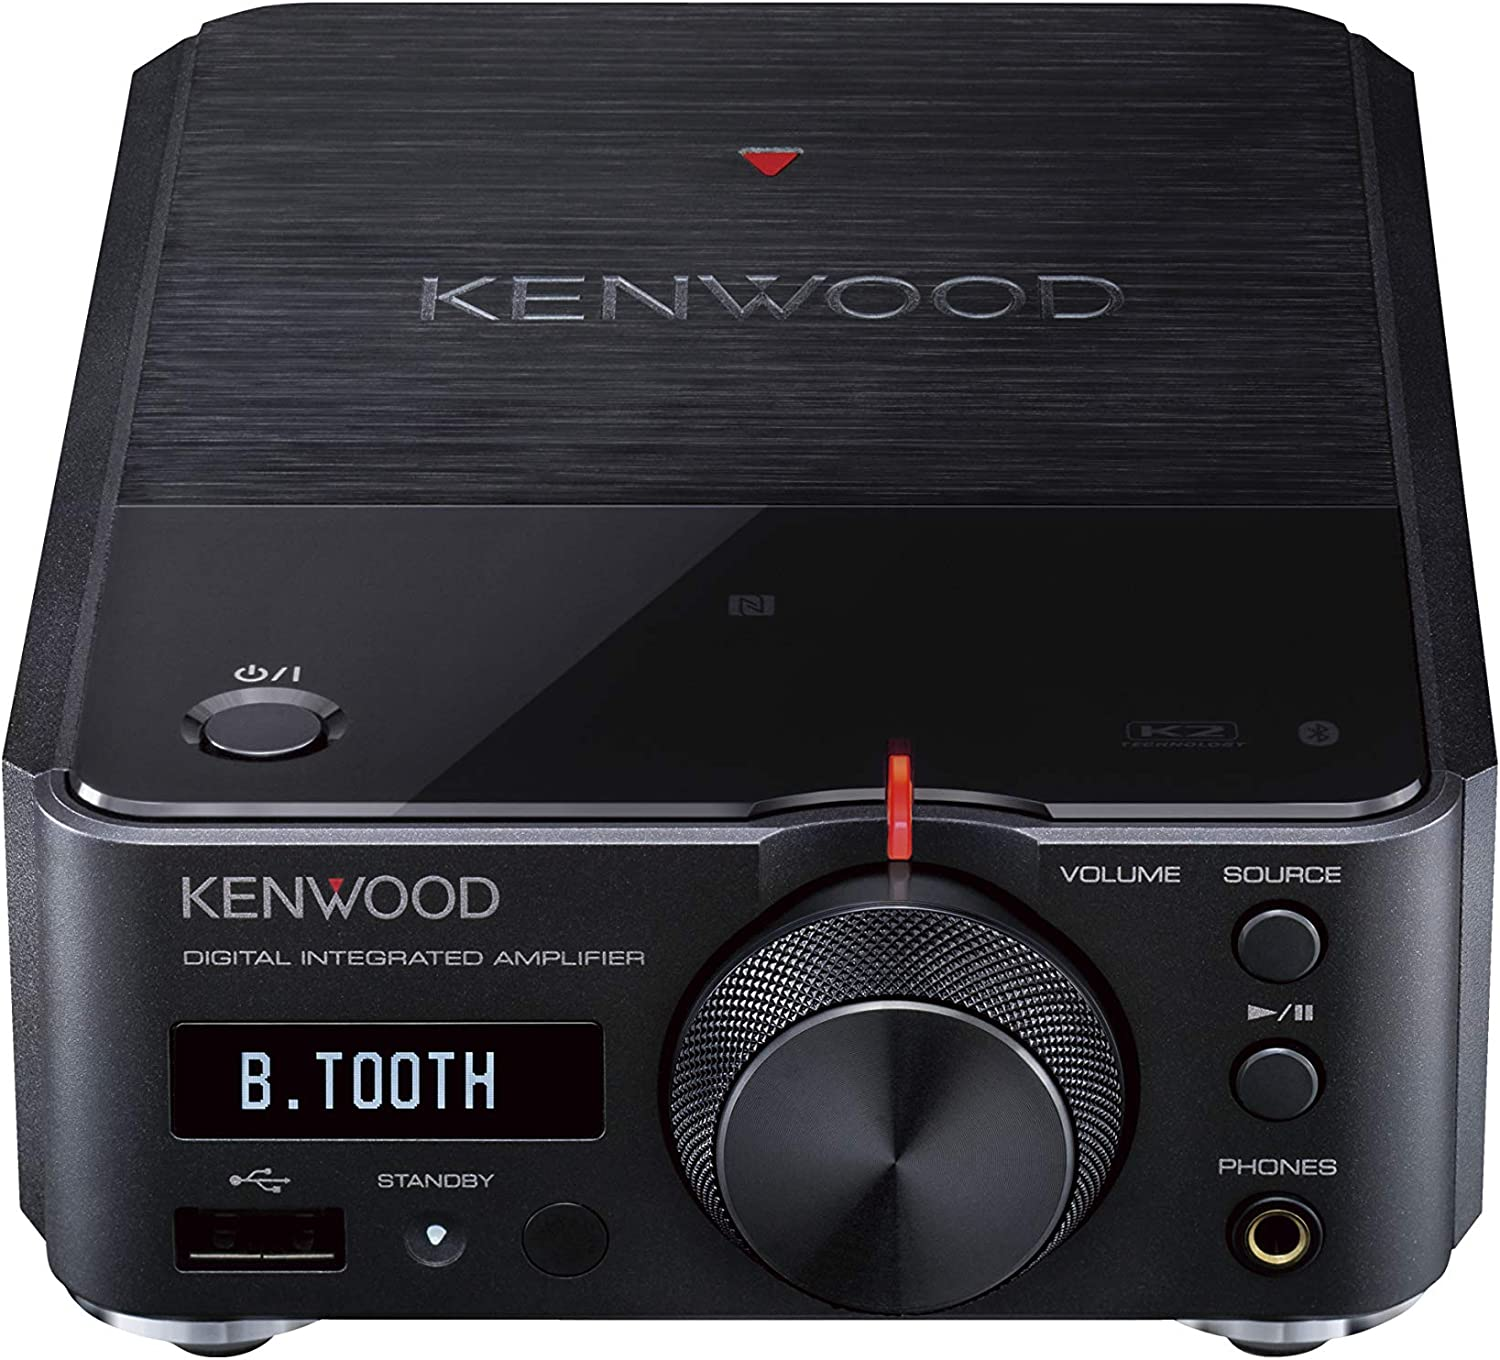 Amazon.com: Kenwood Amplificador integrado KA-NA9 (negro ...